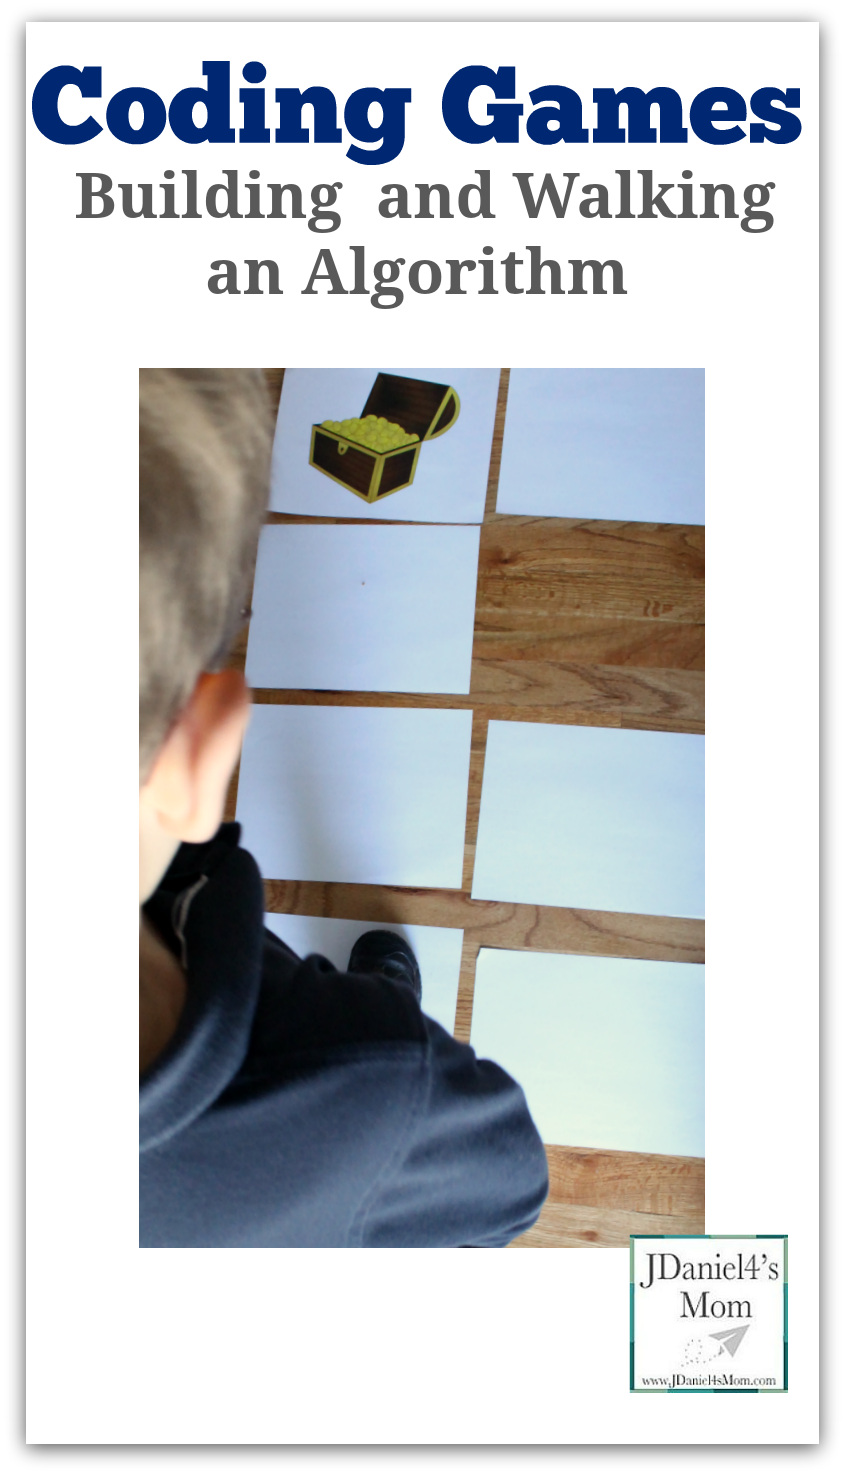 Coding Games Building and Walking an Algorithm   JDaniel4's Mom ...